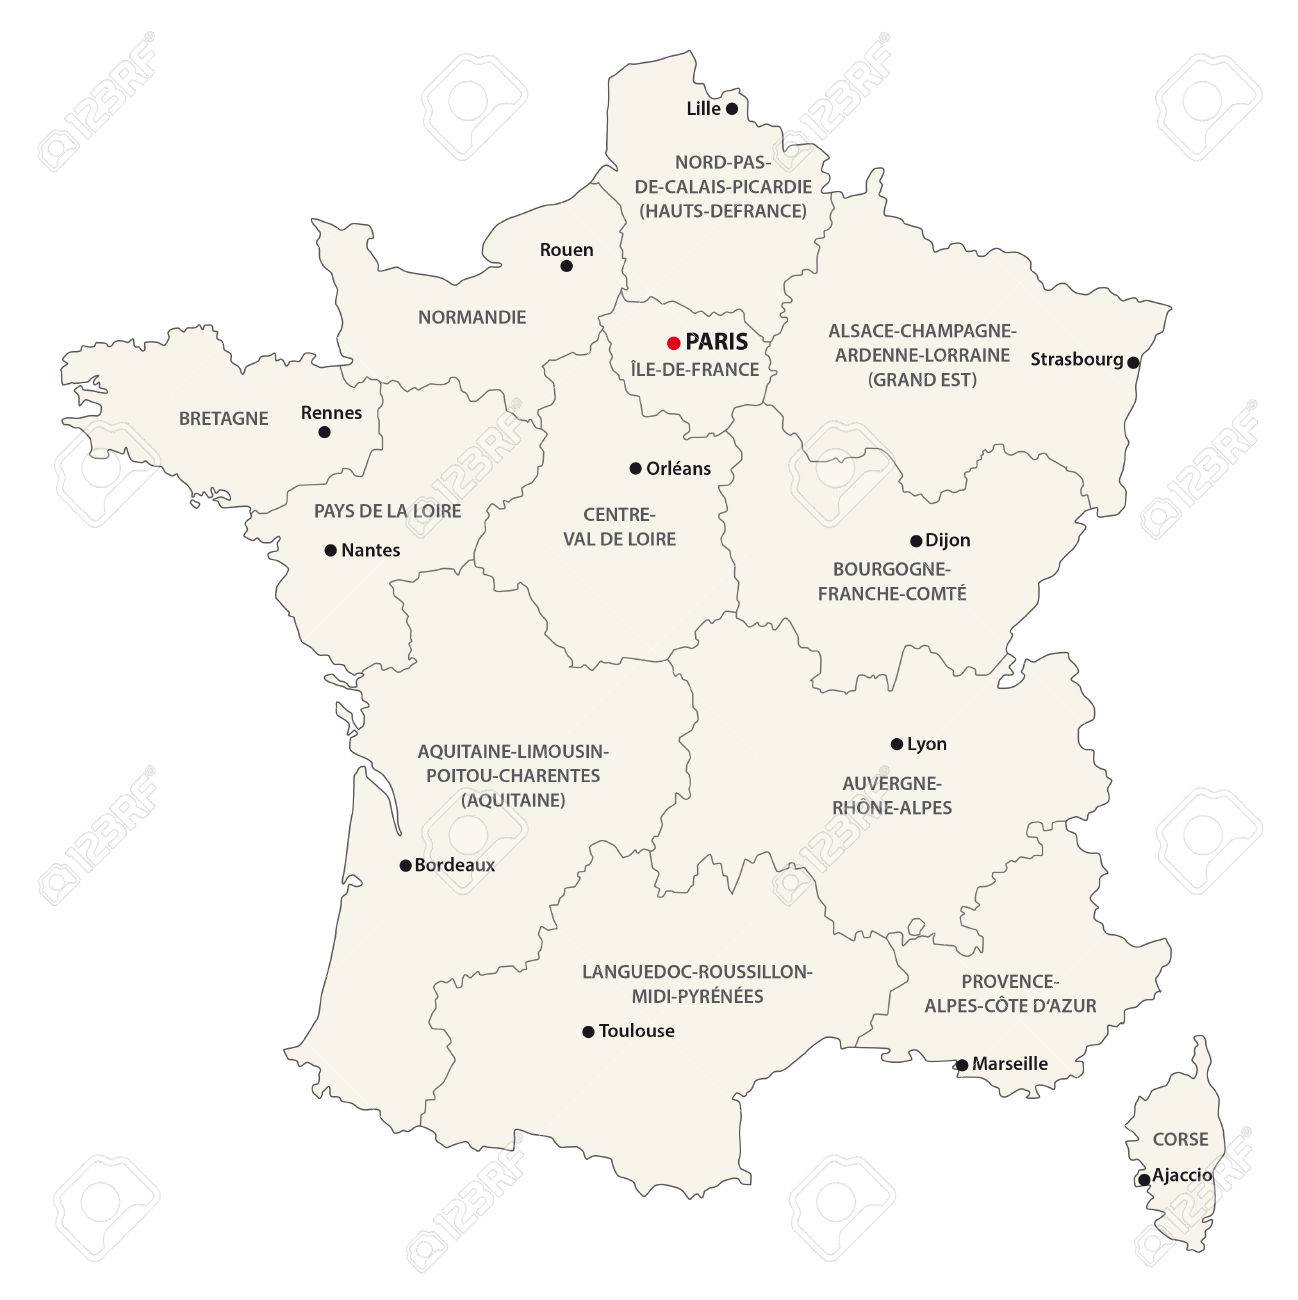 Map Of France New Regions.The New Regions Of France Since Map